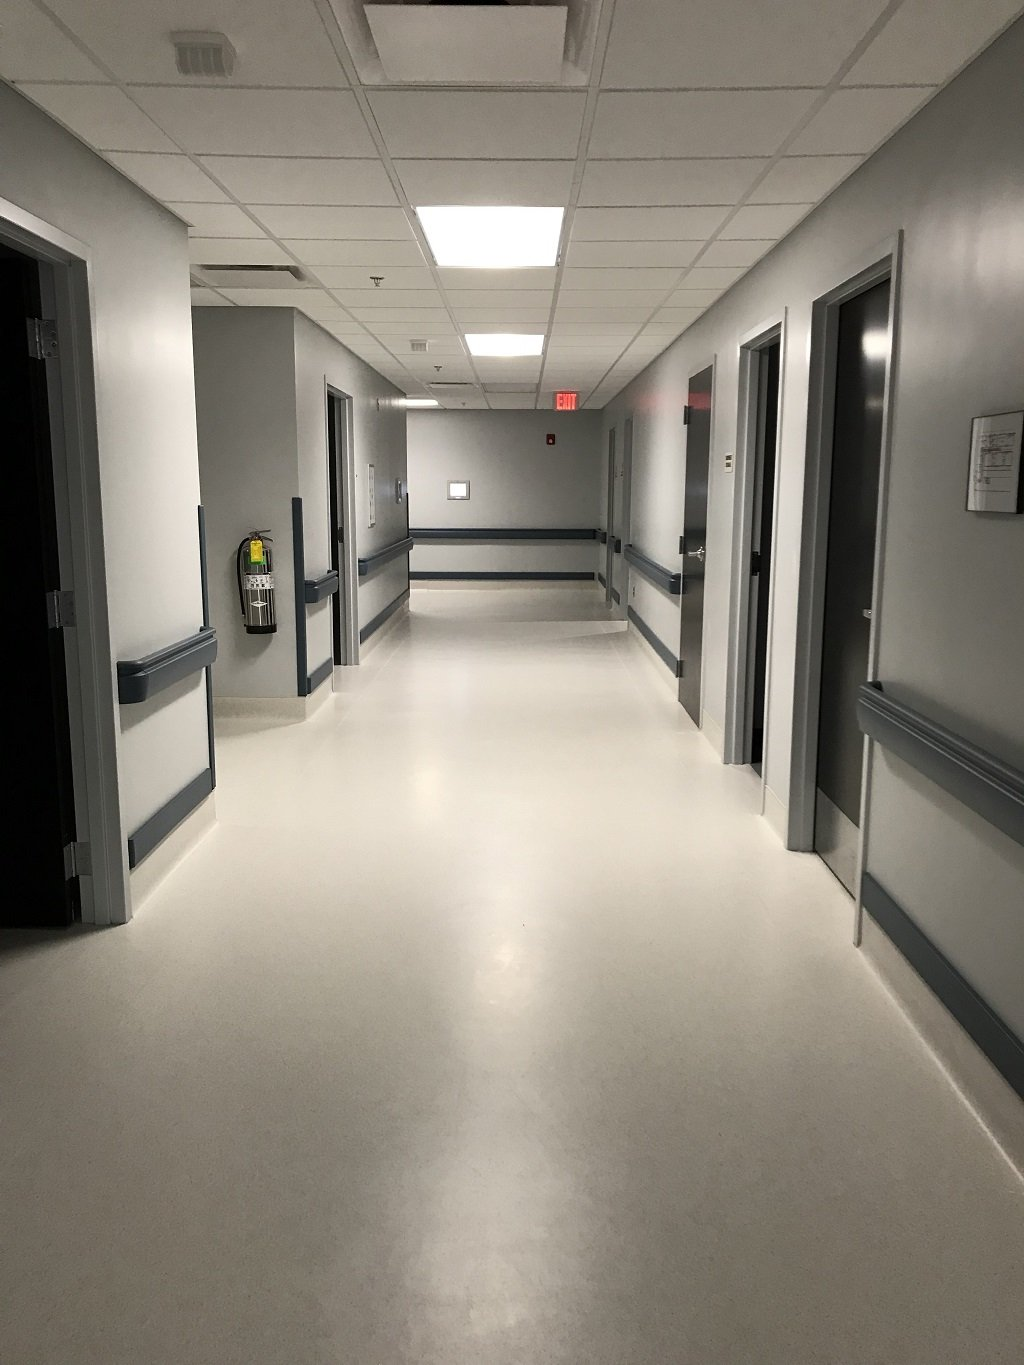 Painted hospital by RAC Pro Painters in South Carolina